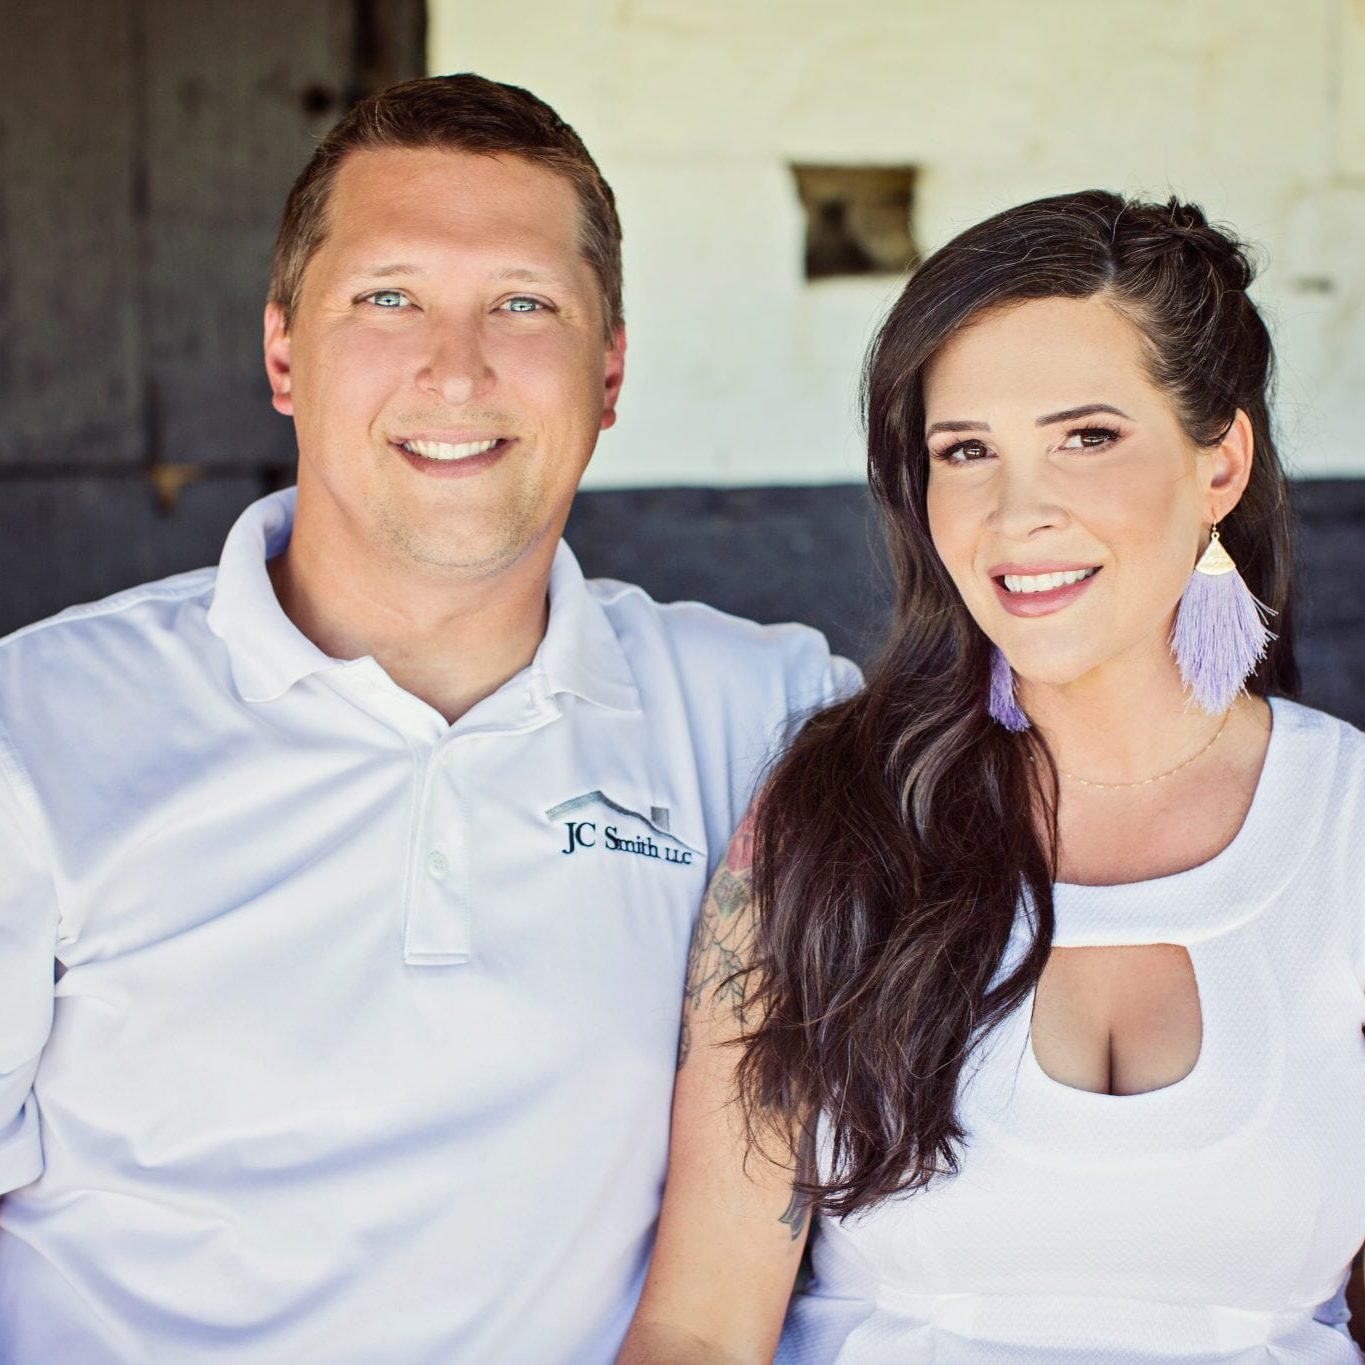 john and chrissy smith web profile pic (2)